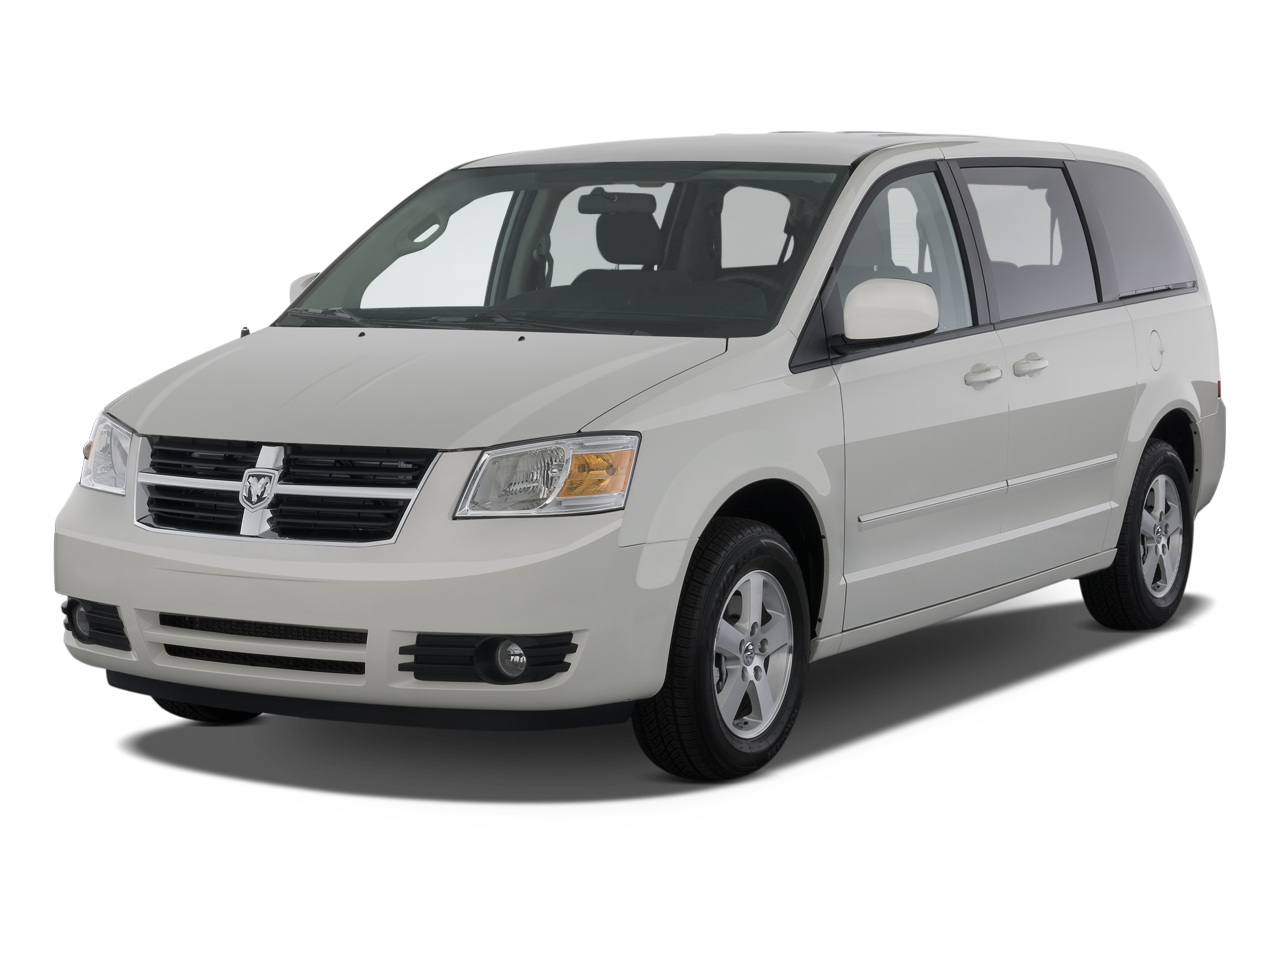 2008 Chrysler Town & Country, Dodge Grand Caravan Recalled ...